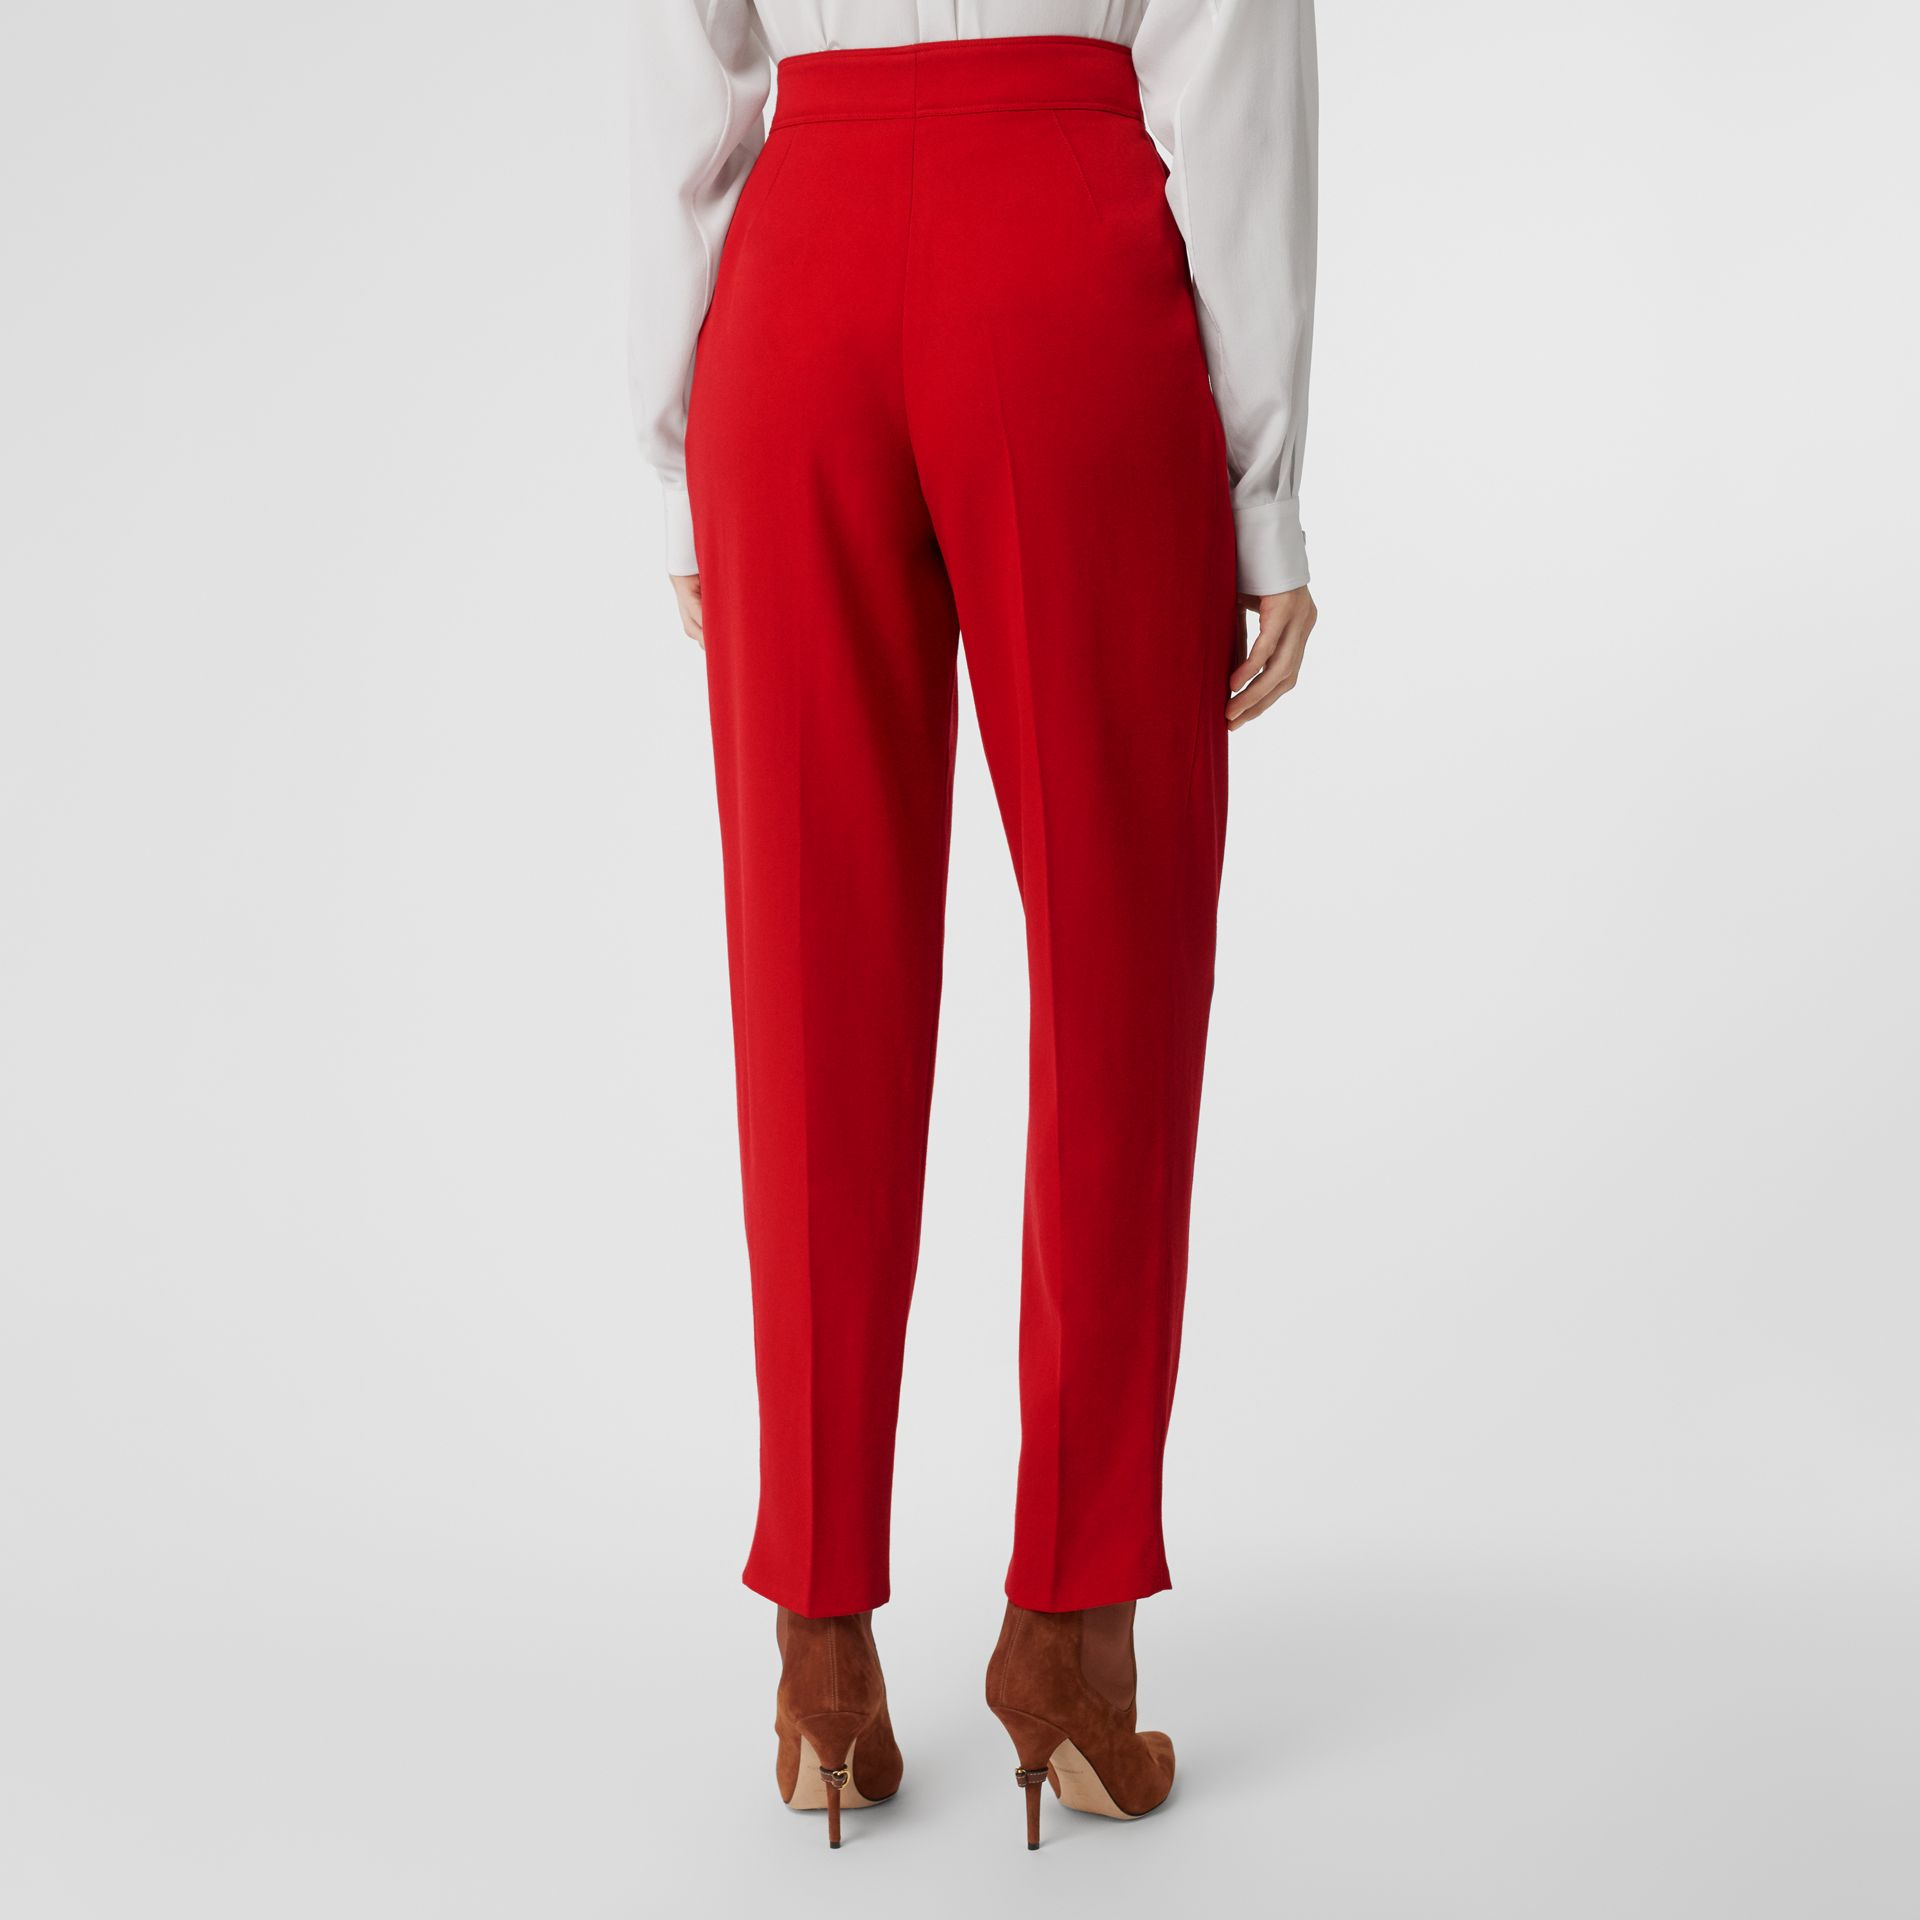 Pleat Detail Wool Tailored Trousers in Bright Red - Women | Burberry Australia - gallery image 2